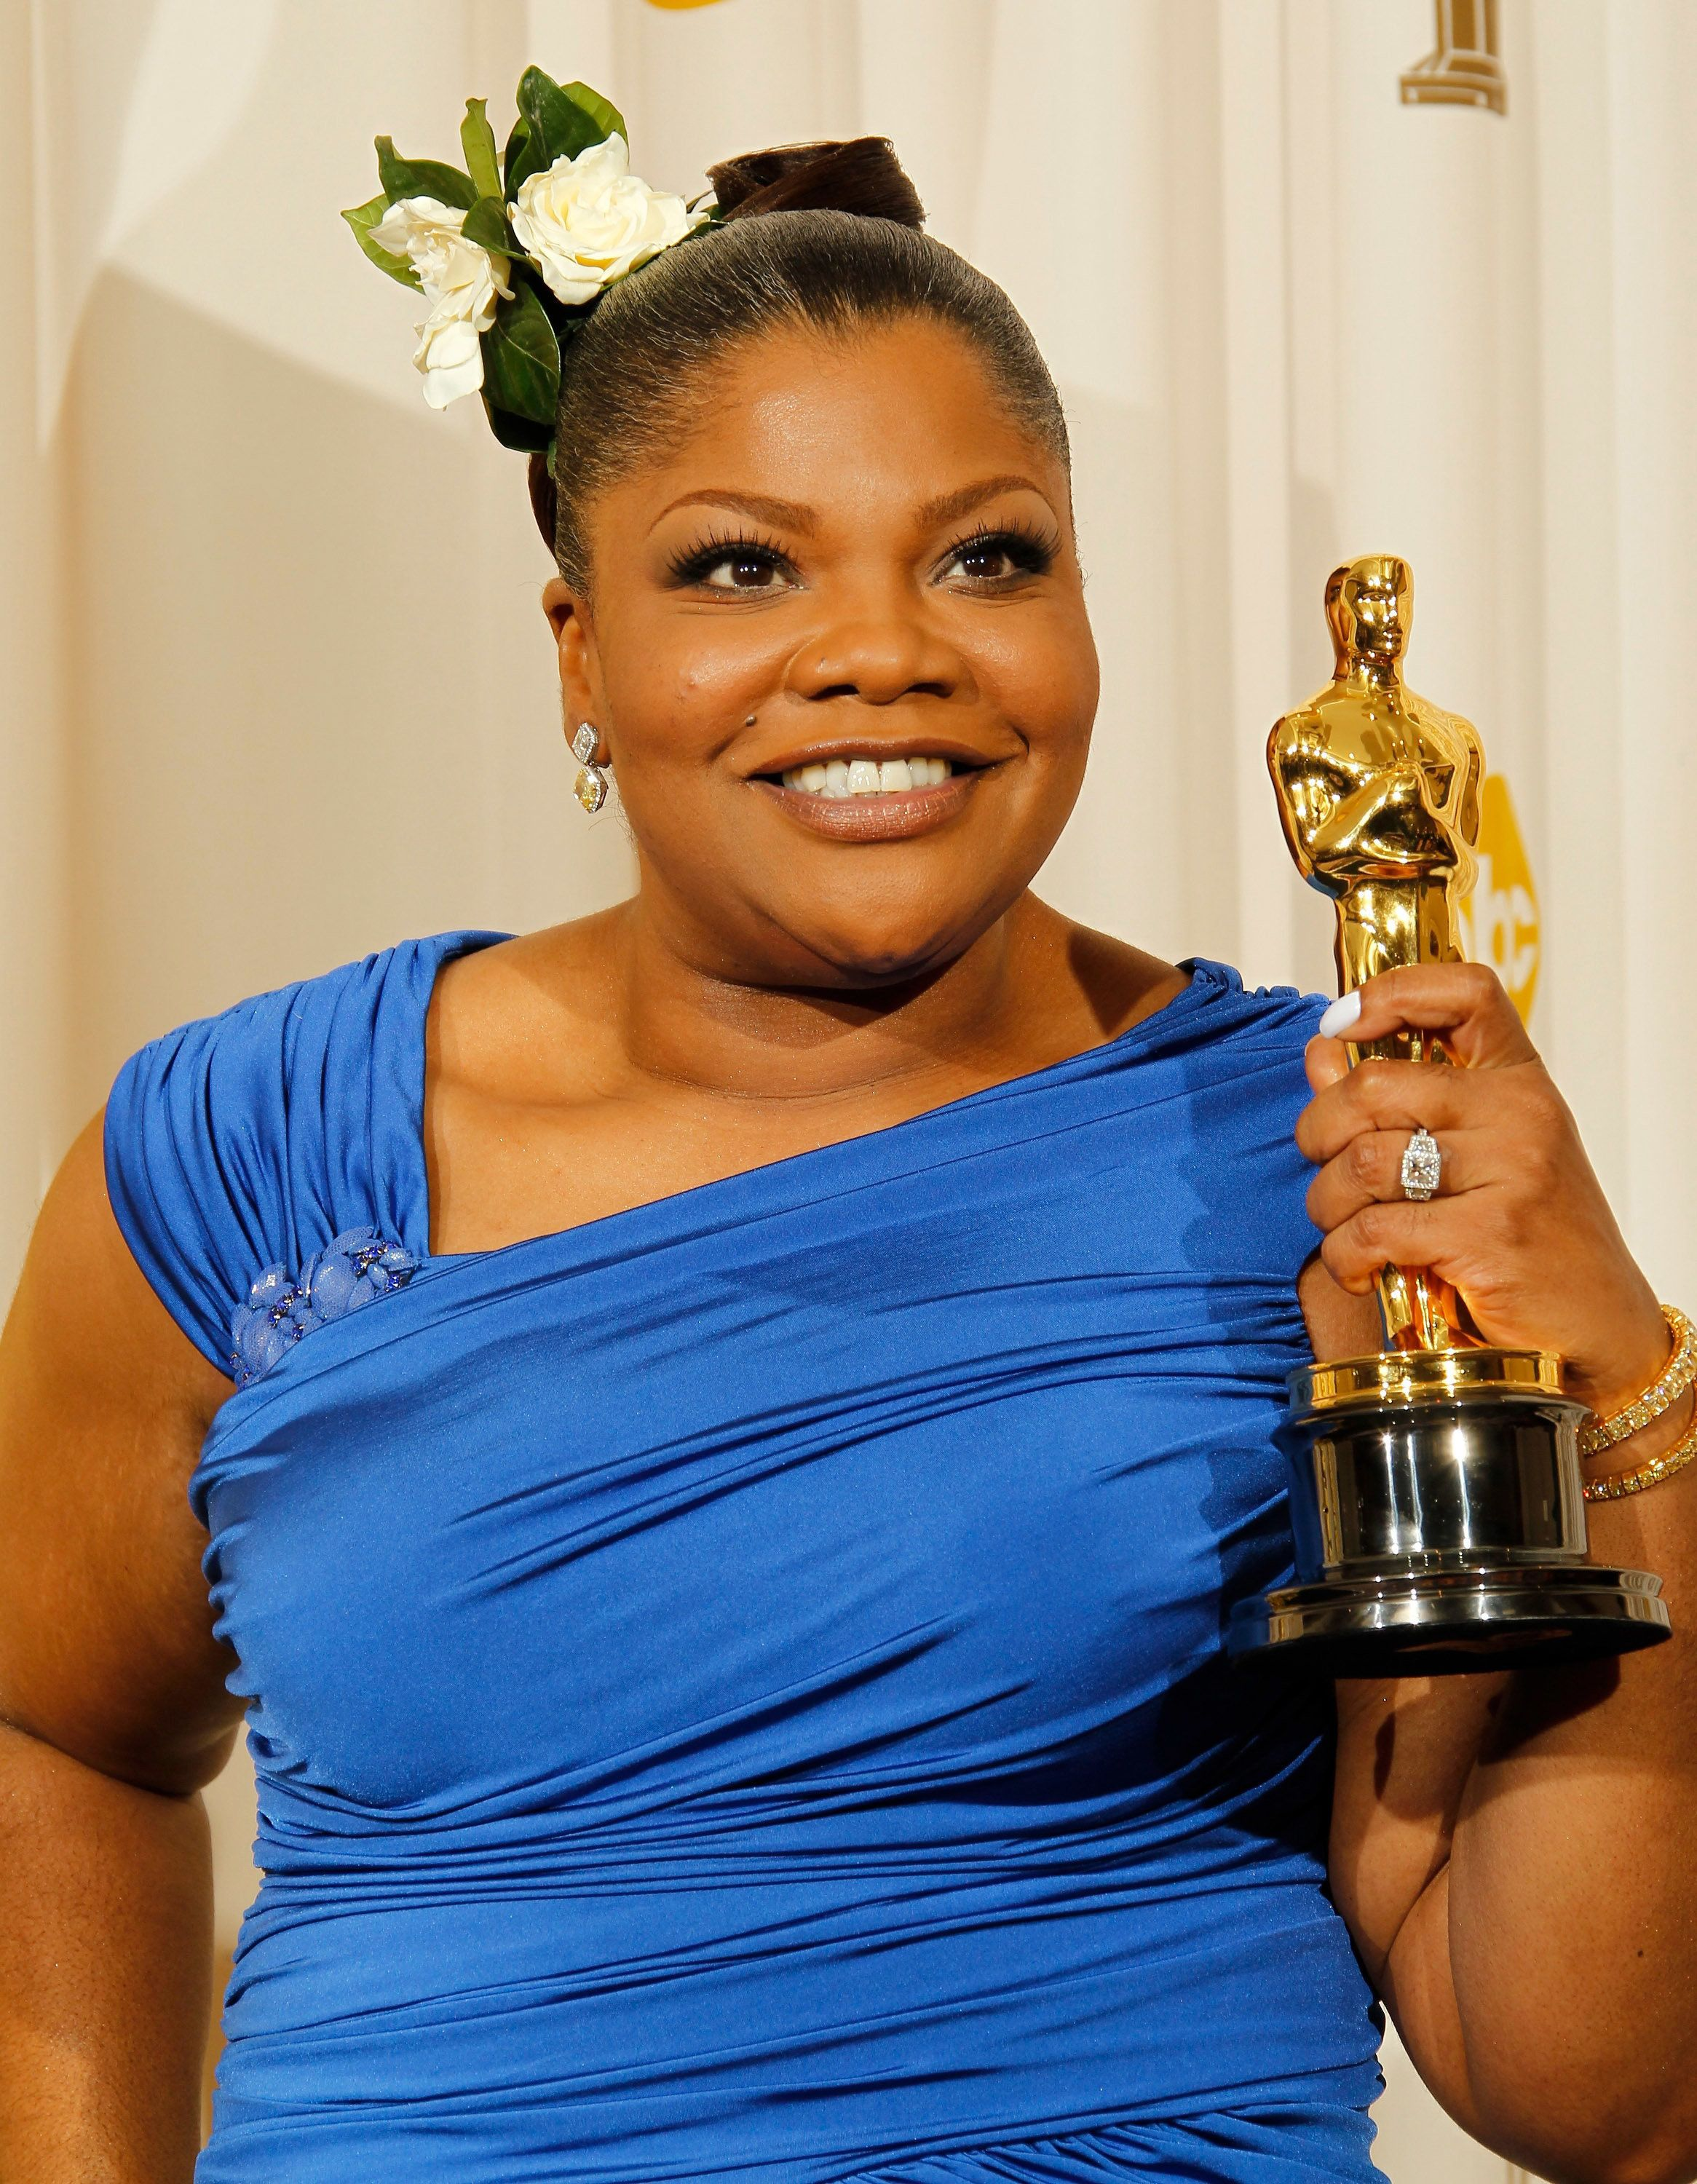 HOLLYWOOD - MARCH 07:  Actress Mo'Nique, winner for Best Supporting Actress for 'Precious' poses in the press room at the 82nd Annual Academy Awards held at the Kodak Theater on March 7, 2010 in Hollywood, California. (Photo by Dan MacMedan/WireImage)